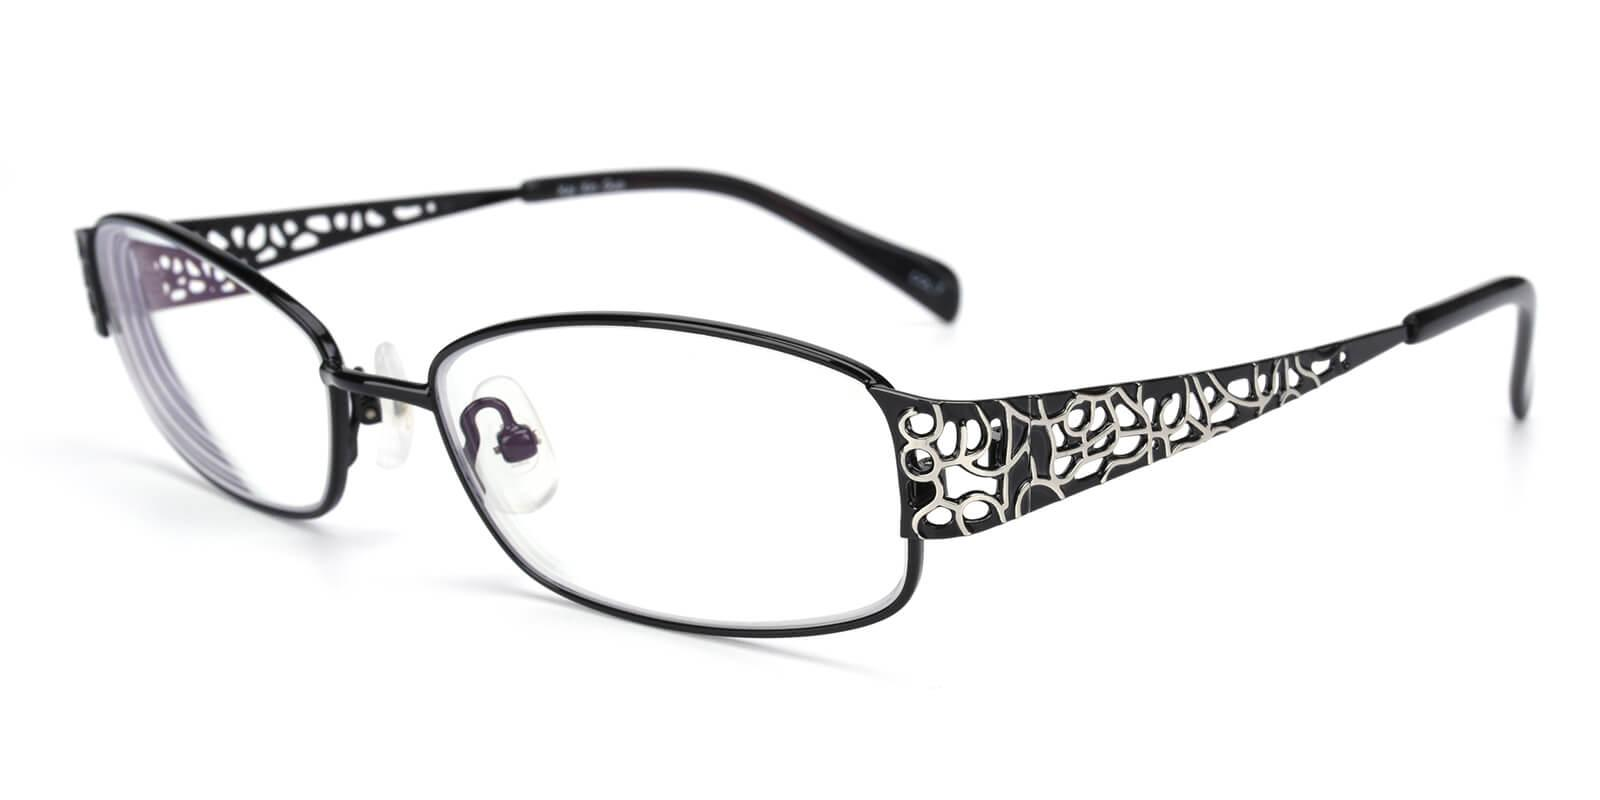 Hollowing-Black-Rectangle-Metal-Eyeglasses-additional1